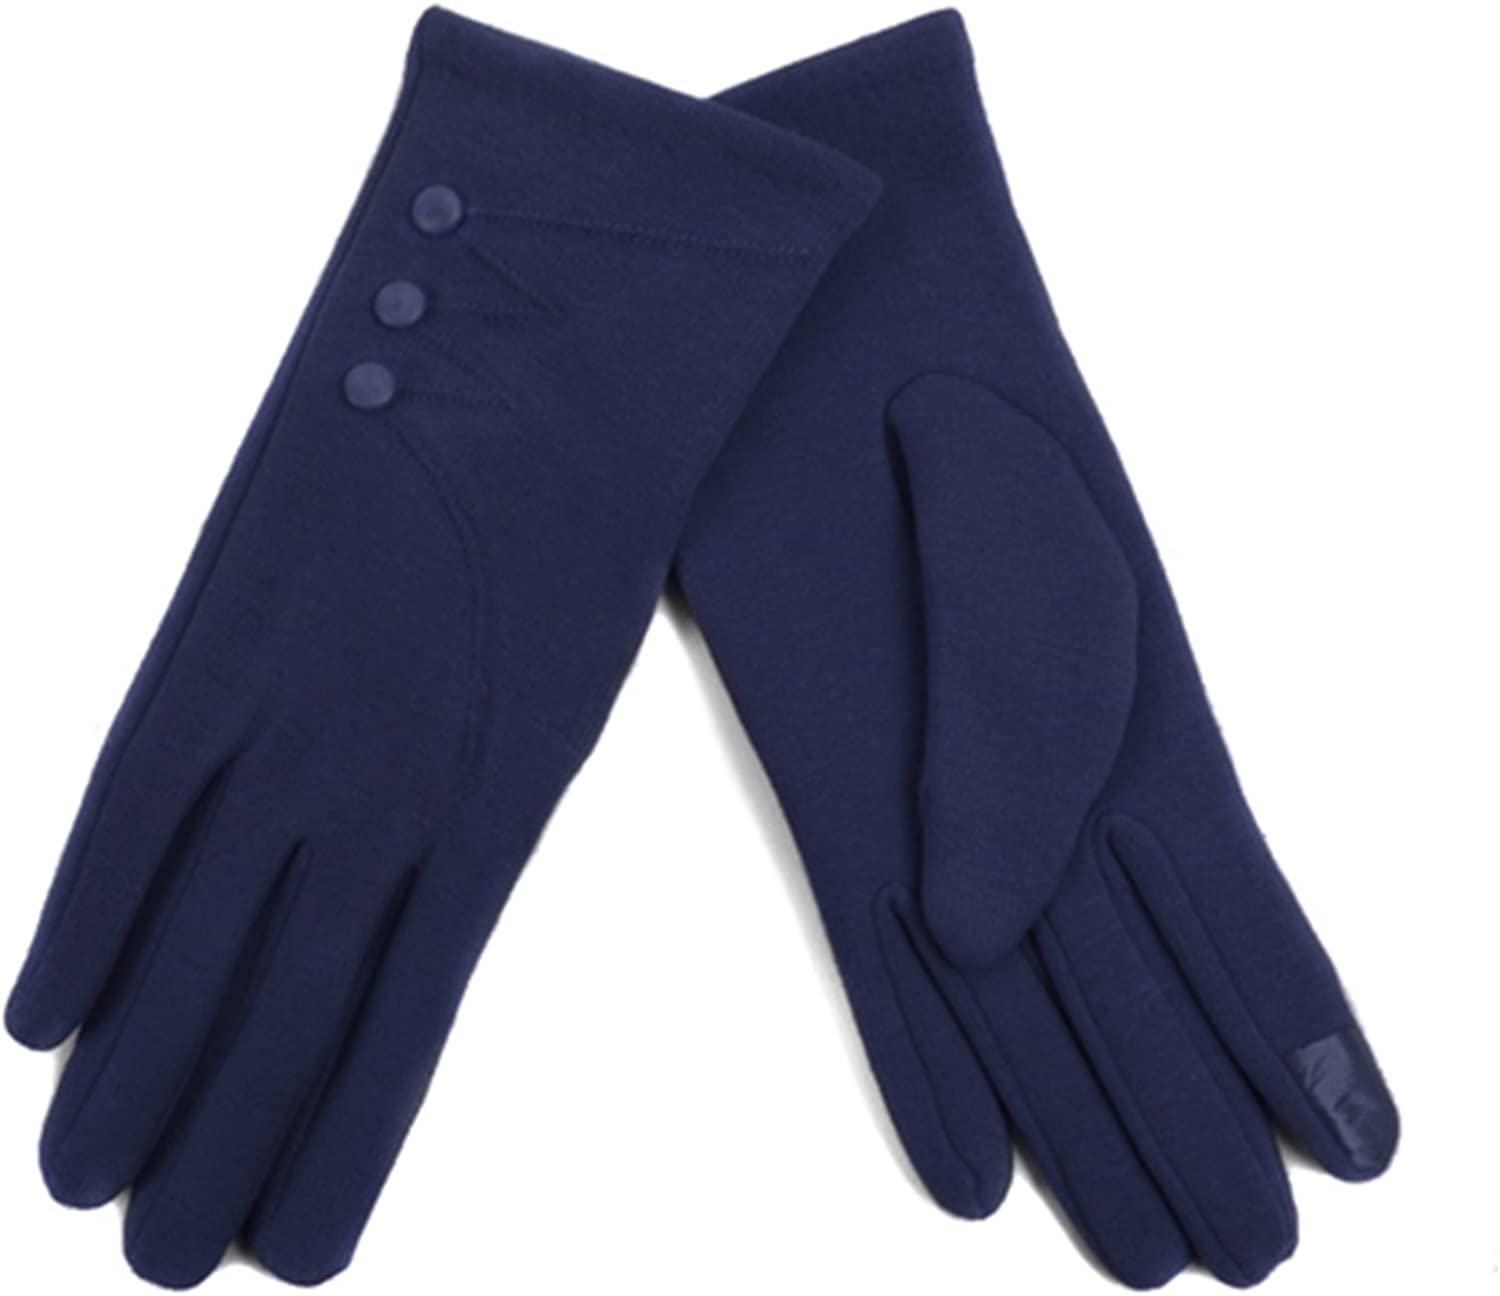 Women's Navy Blue Stylish Touch Screen Gloves with Button Accent & Fleece Lining SM